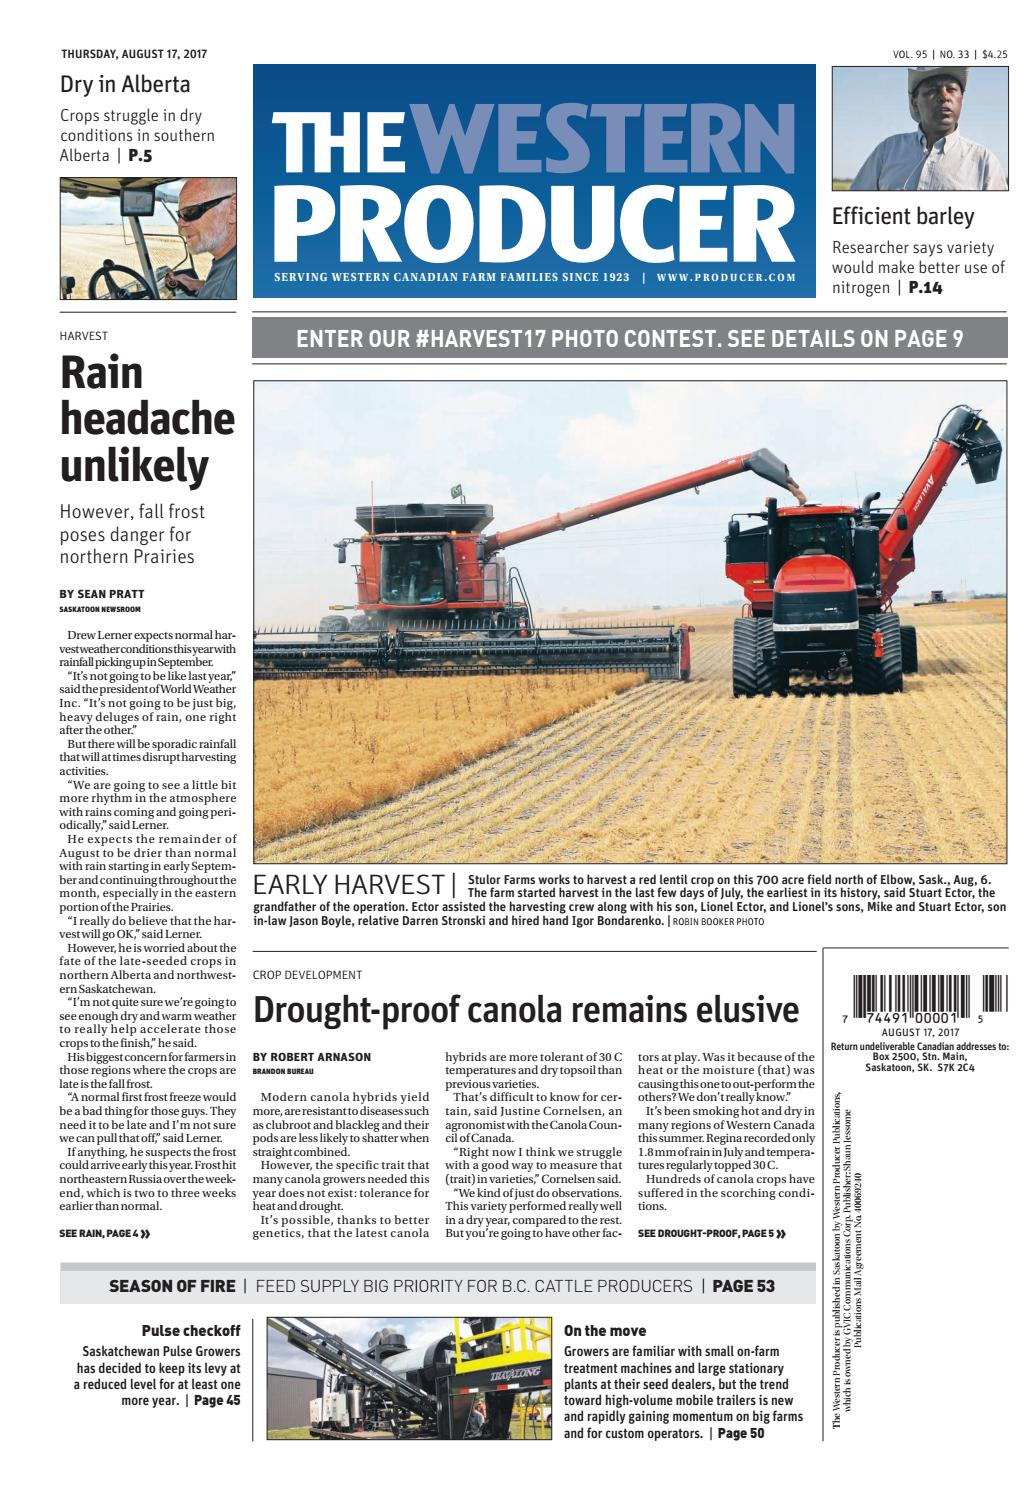 The western producer august 17, 2017 by The Western Producer